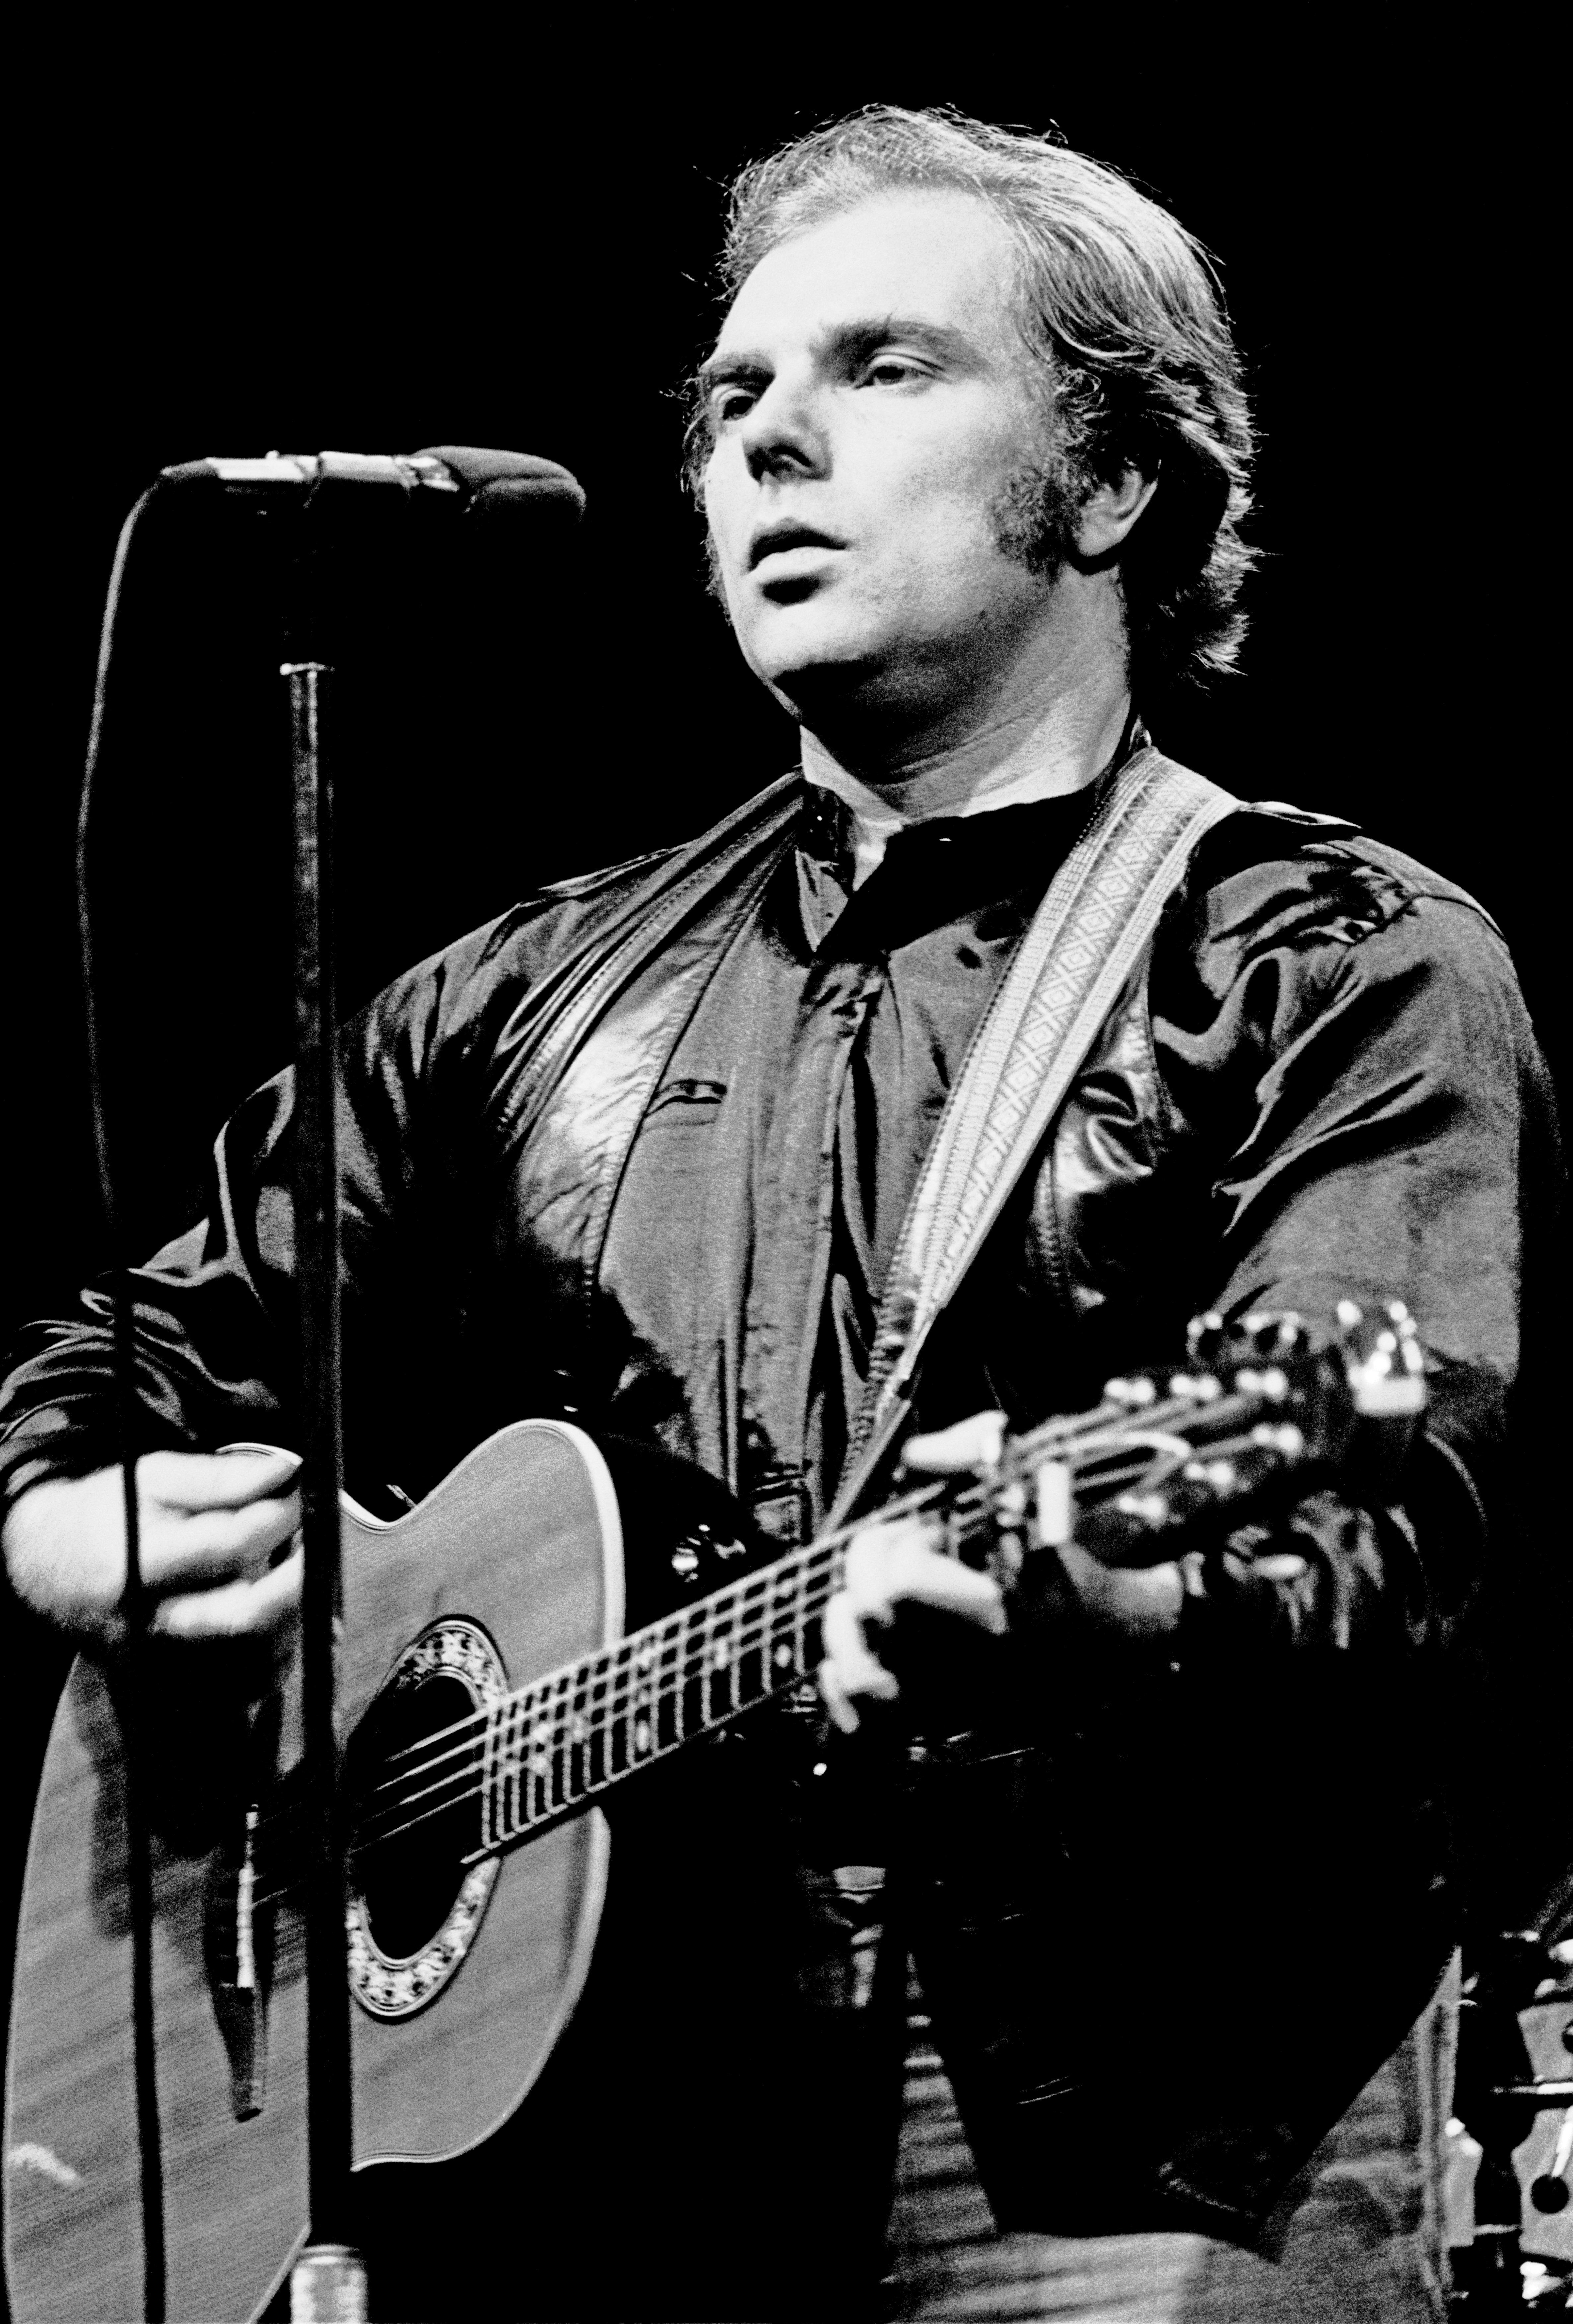 Astral weeks lyrics meaning